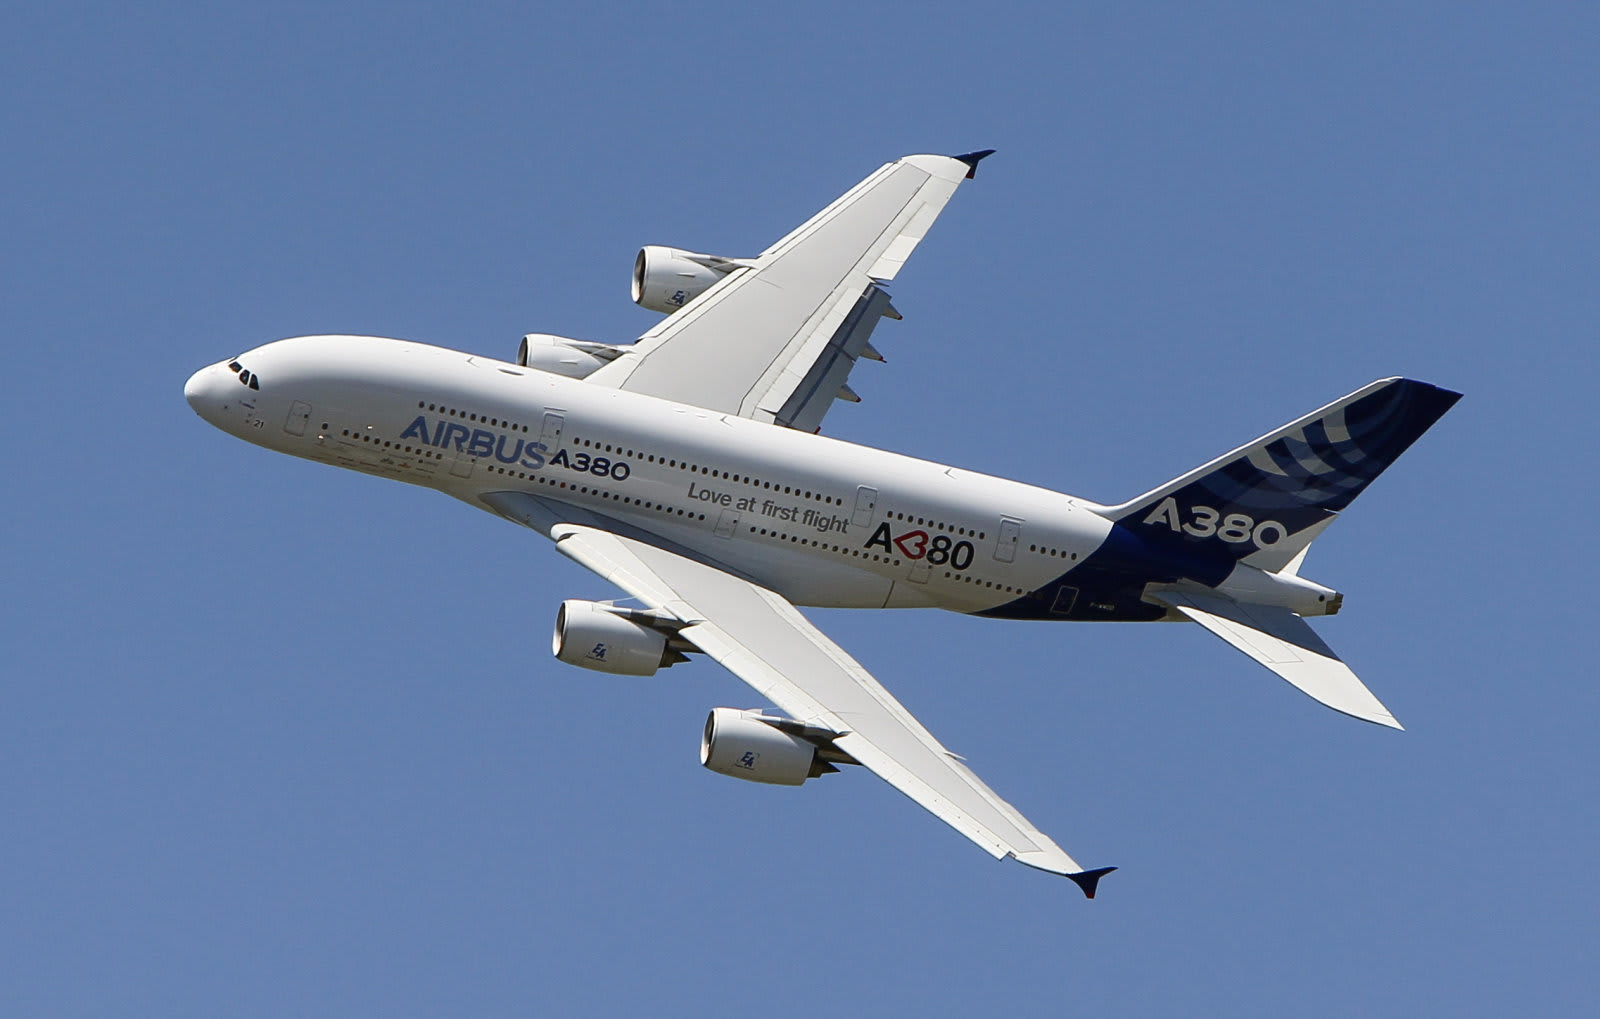 France Europe Airbus